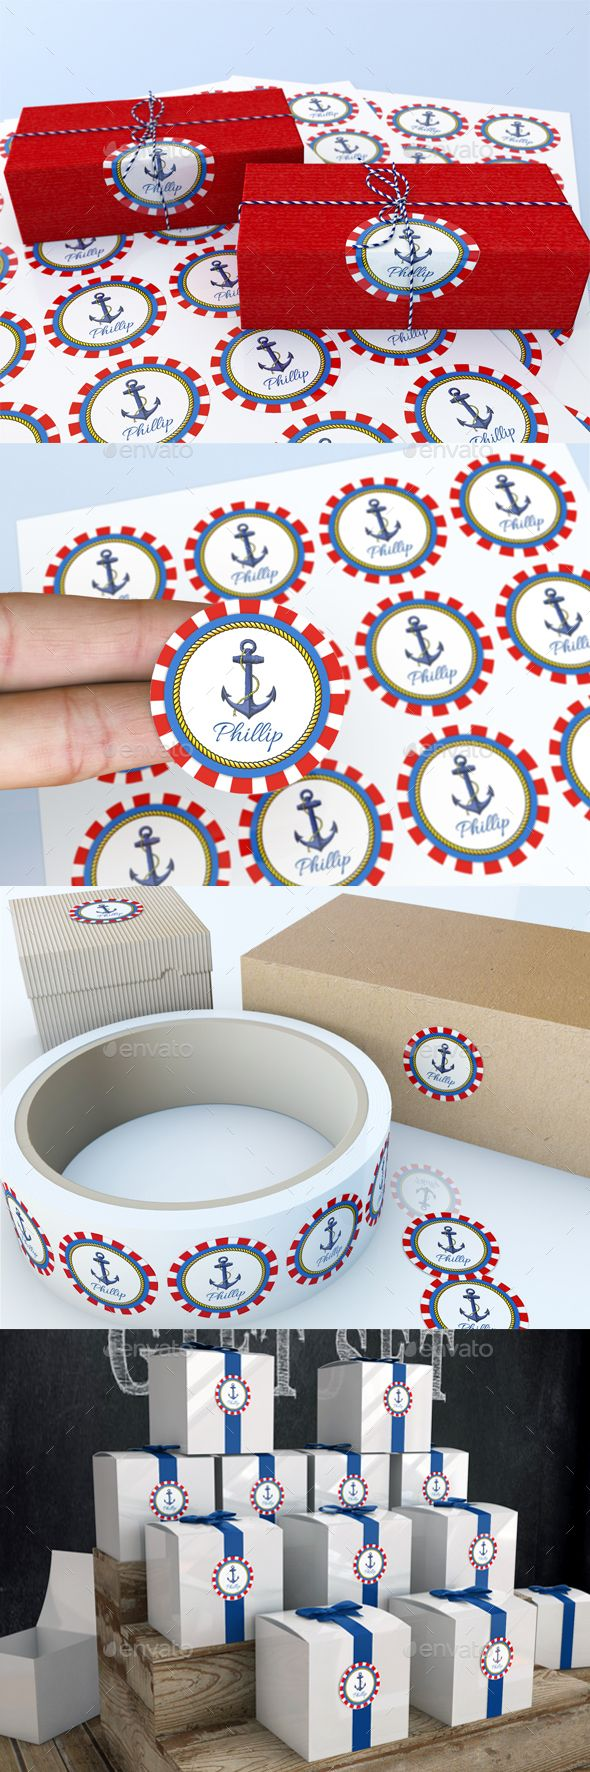 Print Mockup - Round Circular Labels and Stickers Mock-Up - Print Mockup by Sanchi477.   #UIUX #DesignTemplate #TuesdayThoughts #UserInterface #Vectors #Graphic #WebElements #TuesdayWisdom #TuesdayMotivation #HappyTuesday #CyberMonday #PresentationTemplate#TuesdayFeeling #Logo #BlackFriday